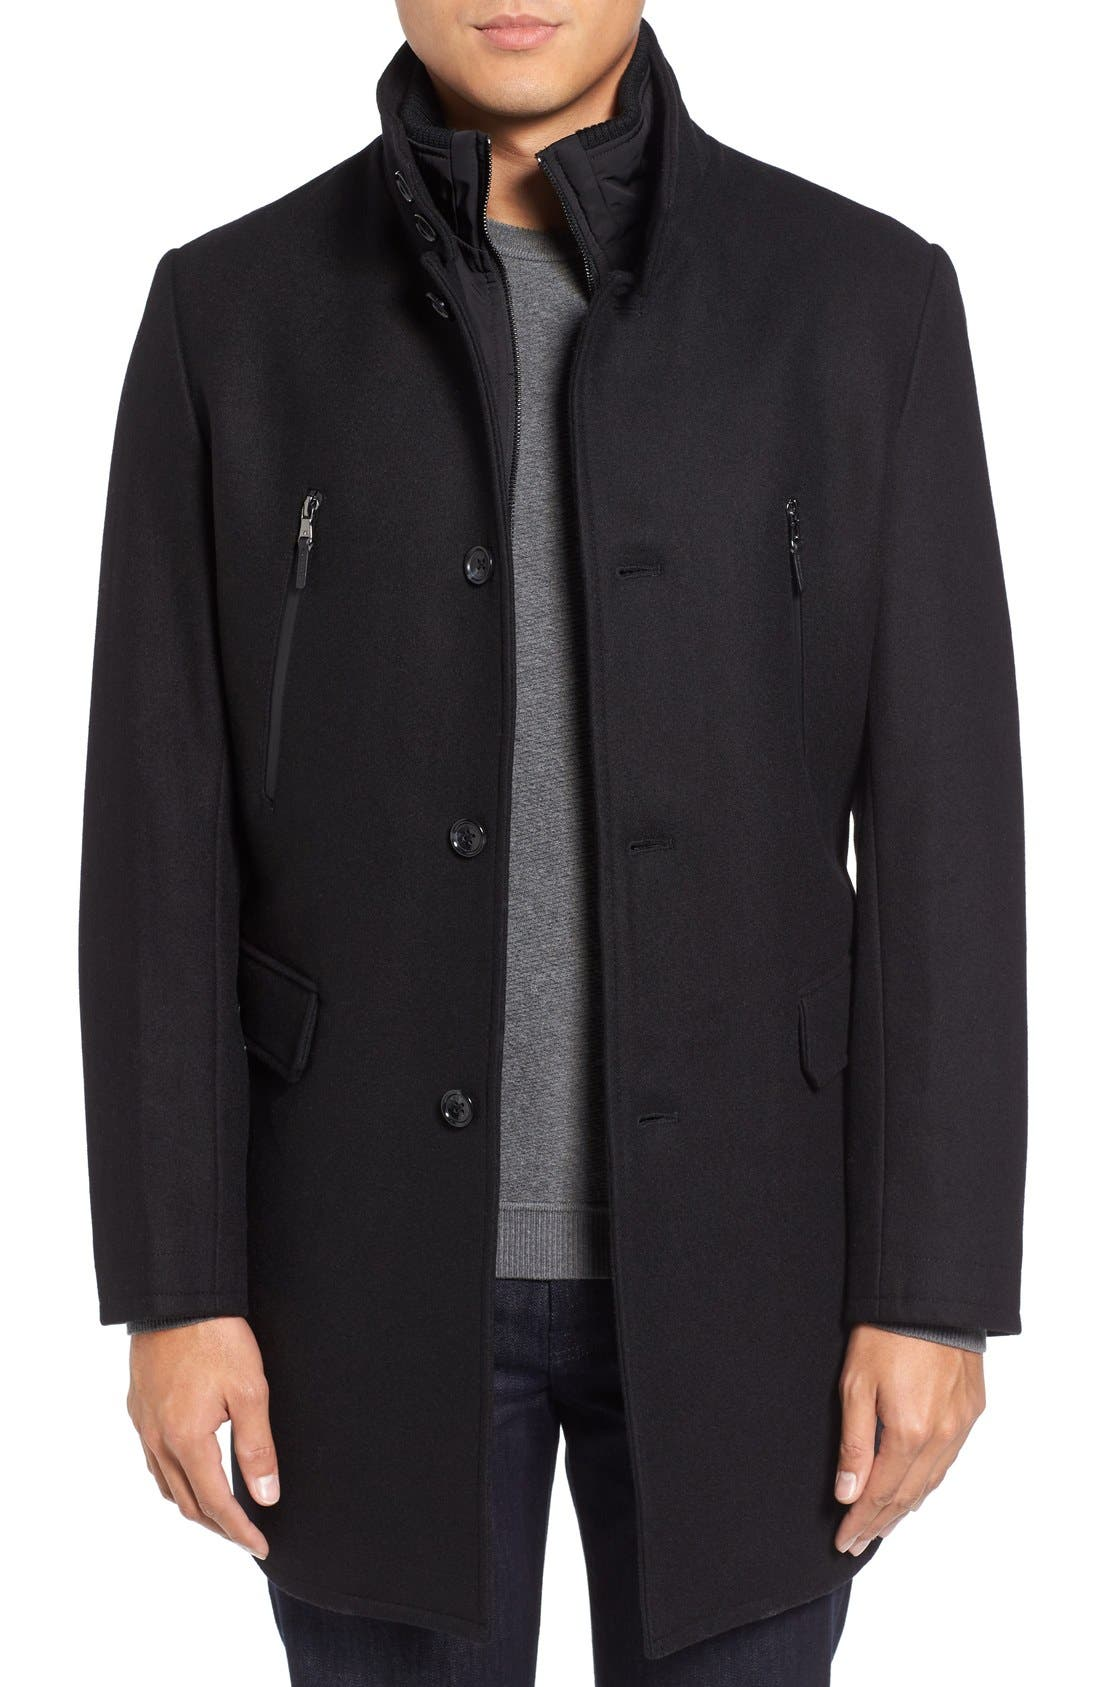 Michael Kors Wool Blend Top Coat